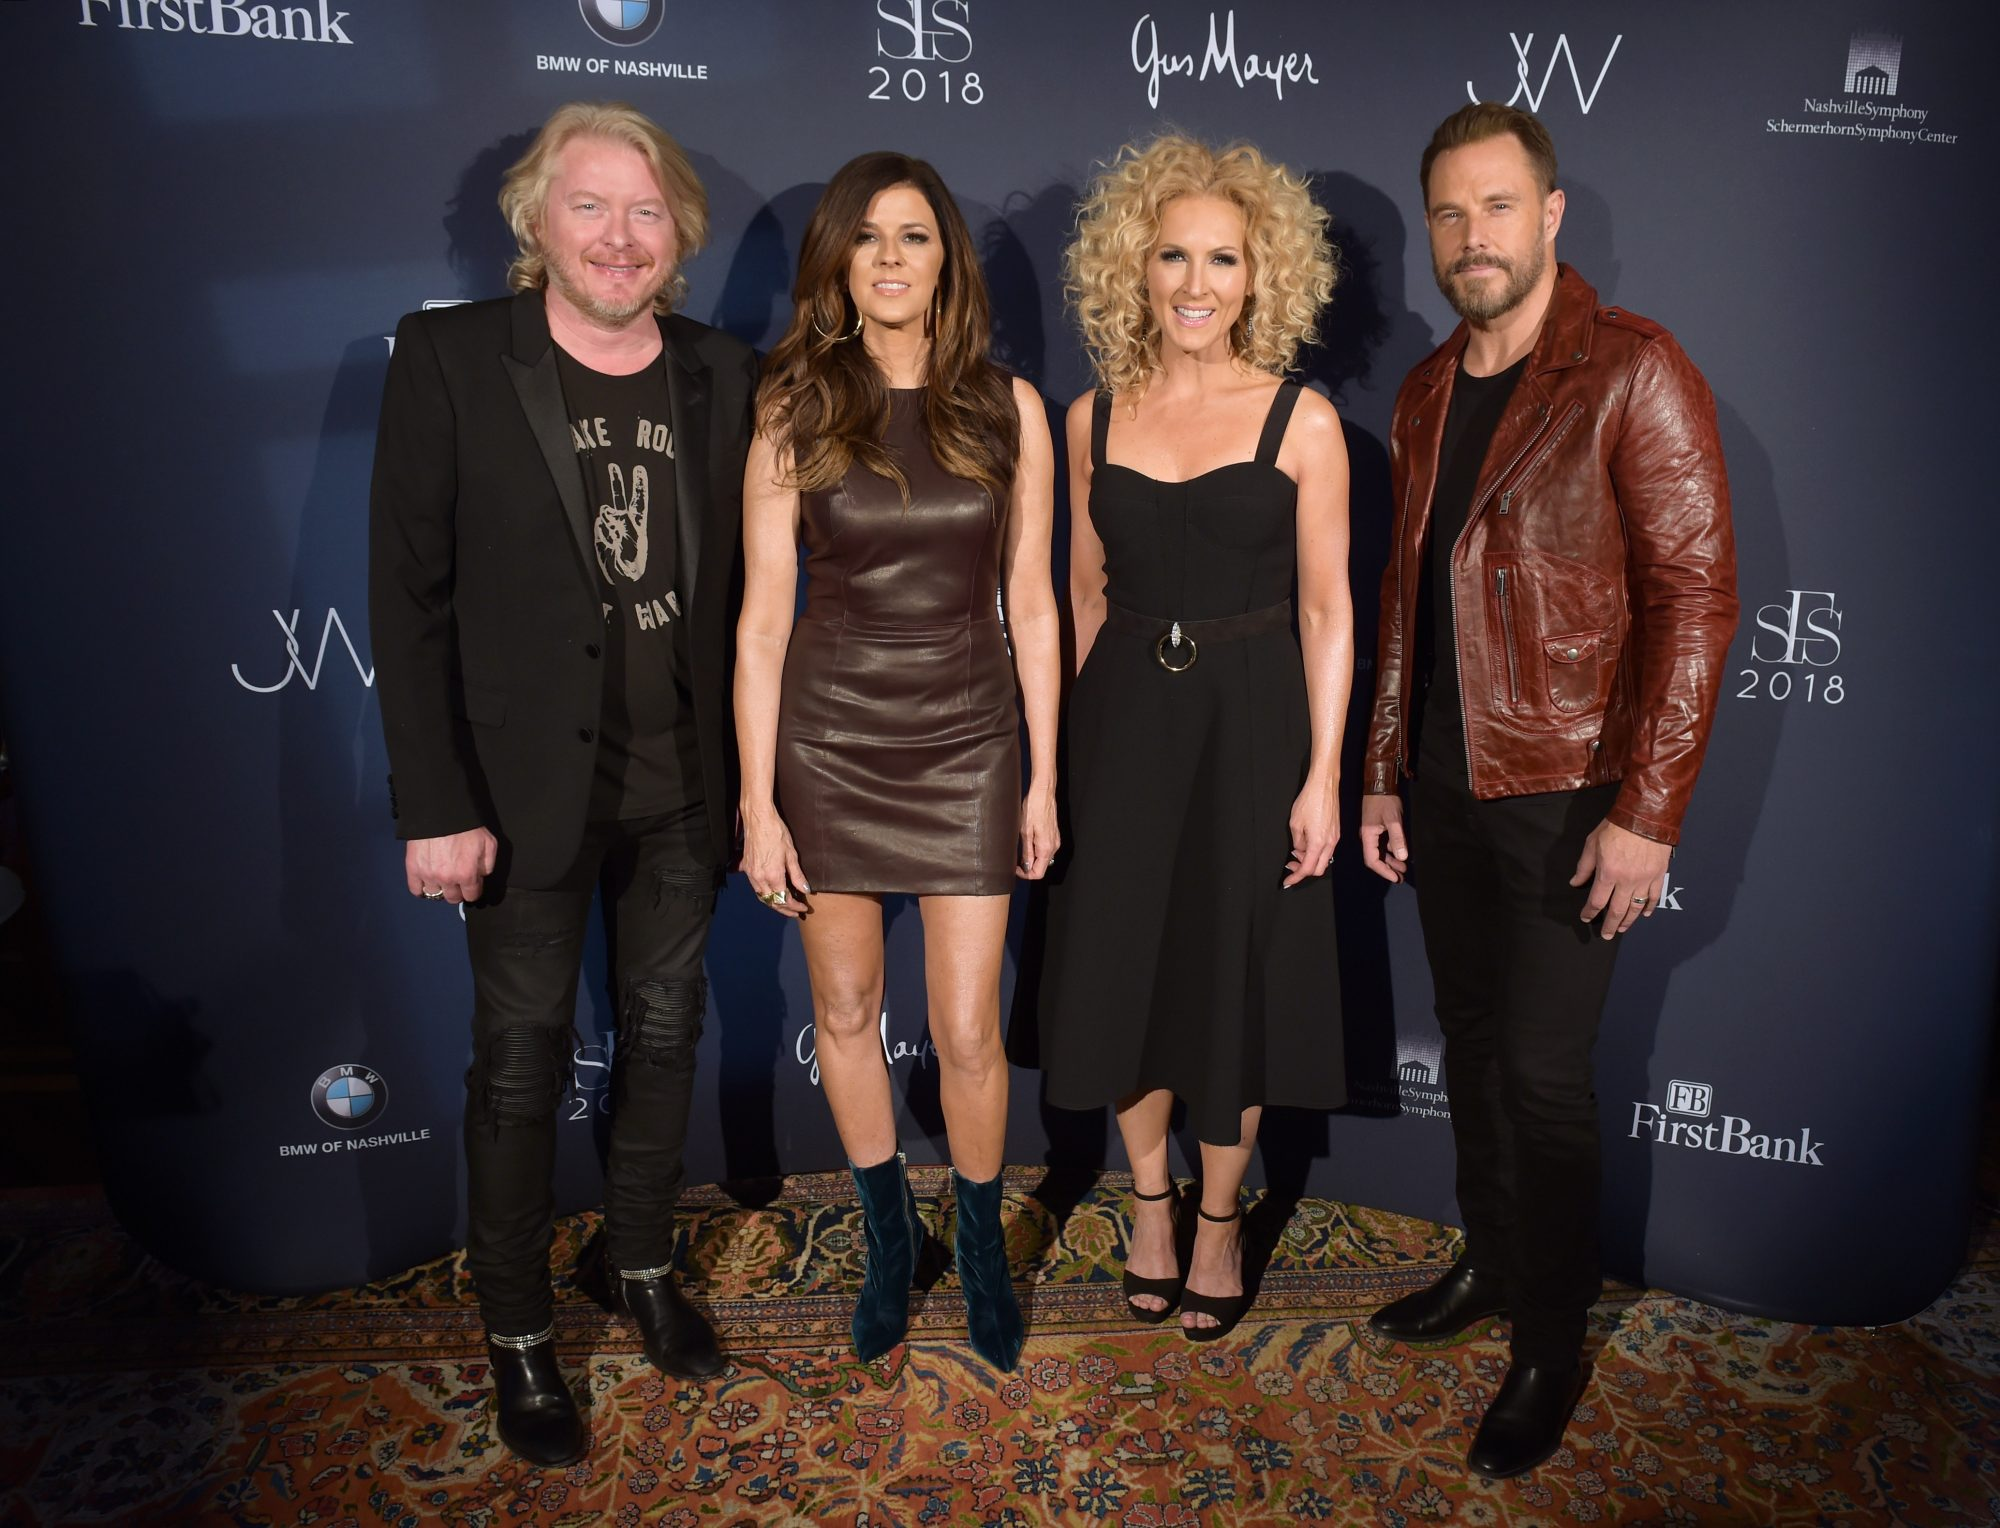 Little Big Town Group Photo